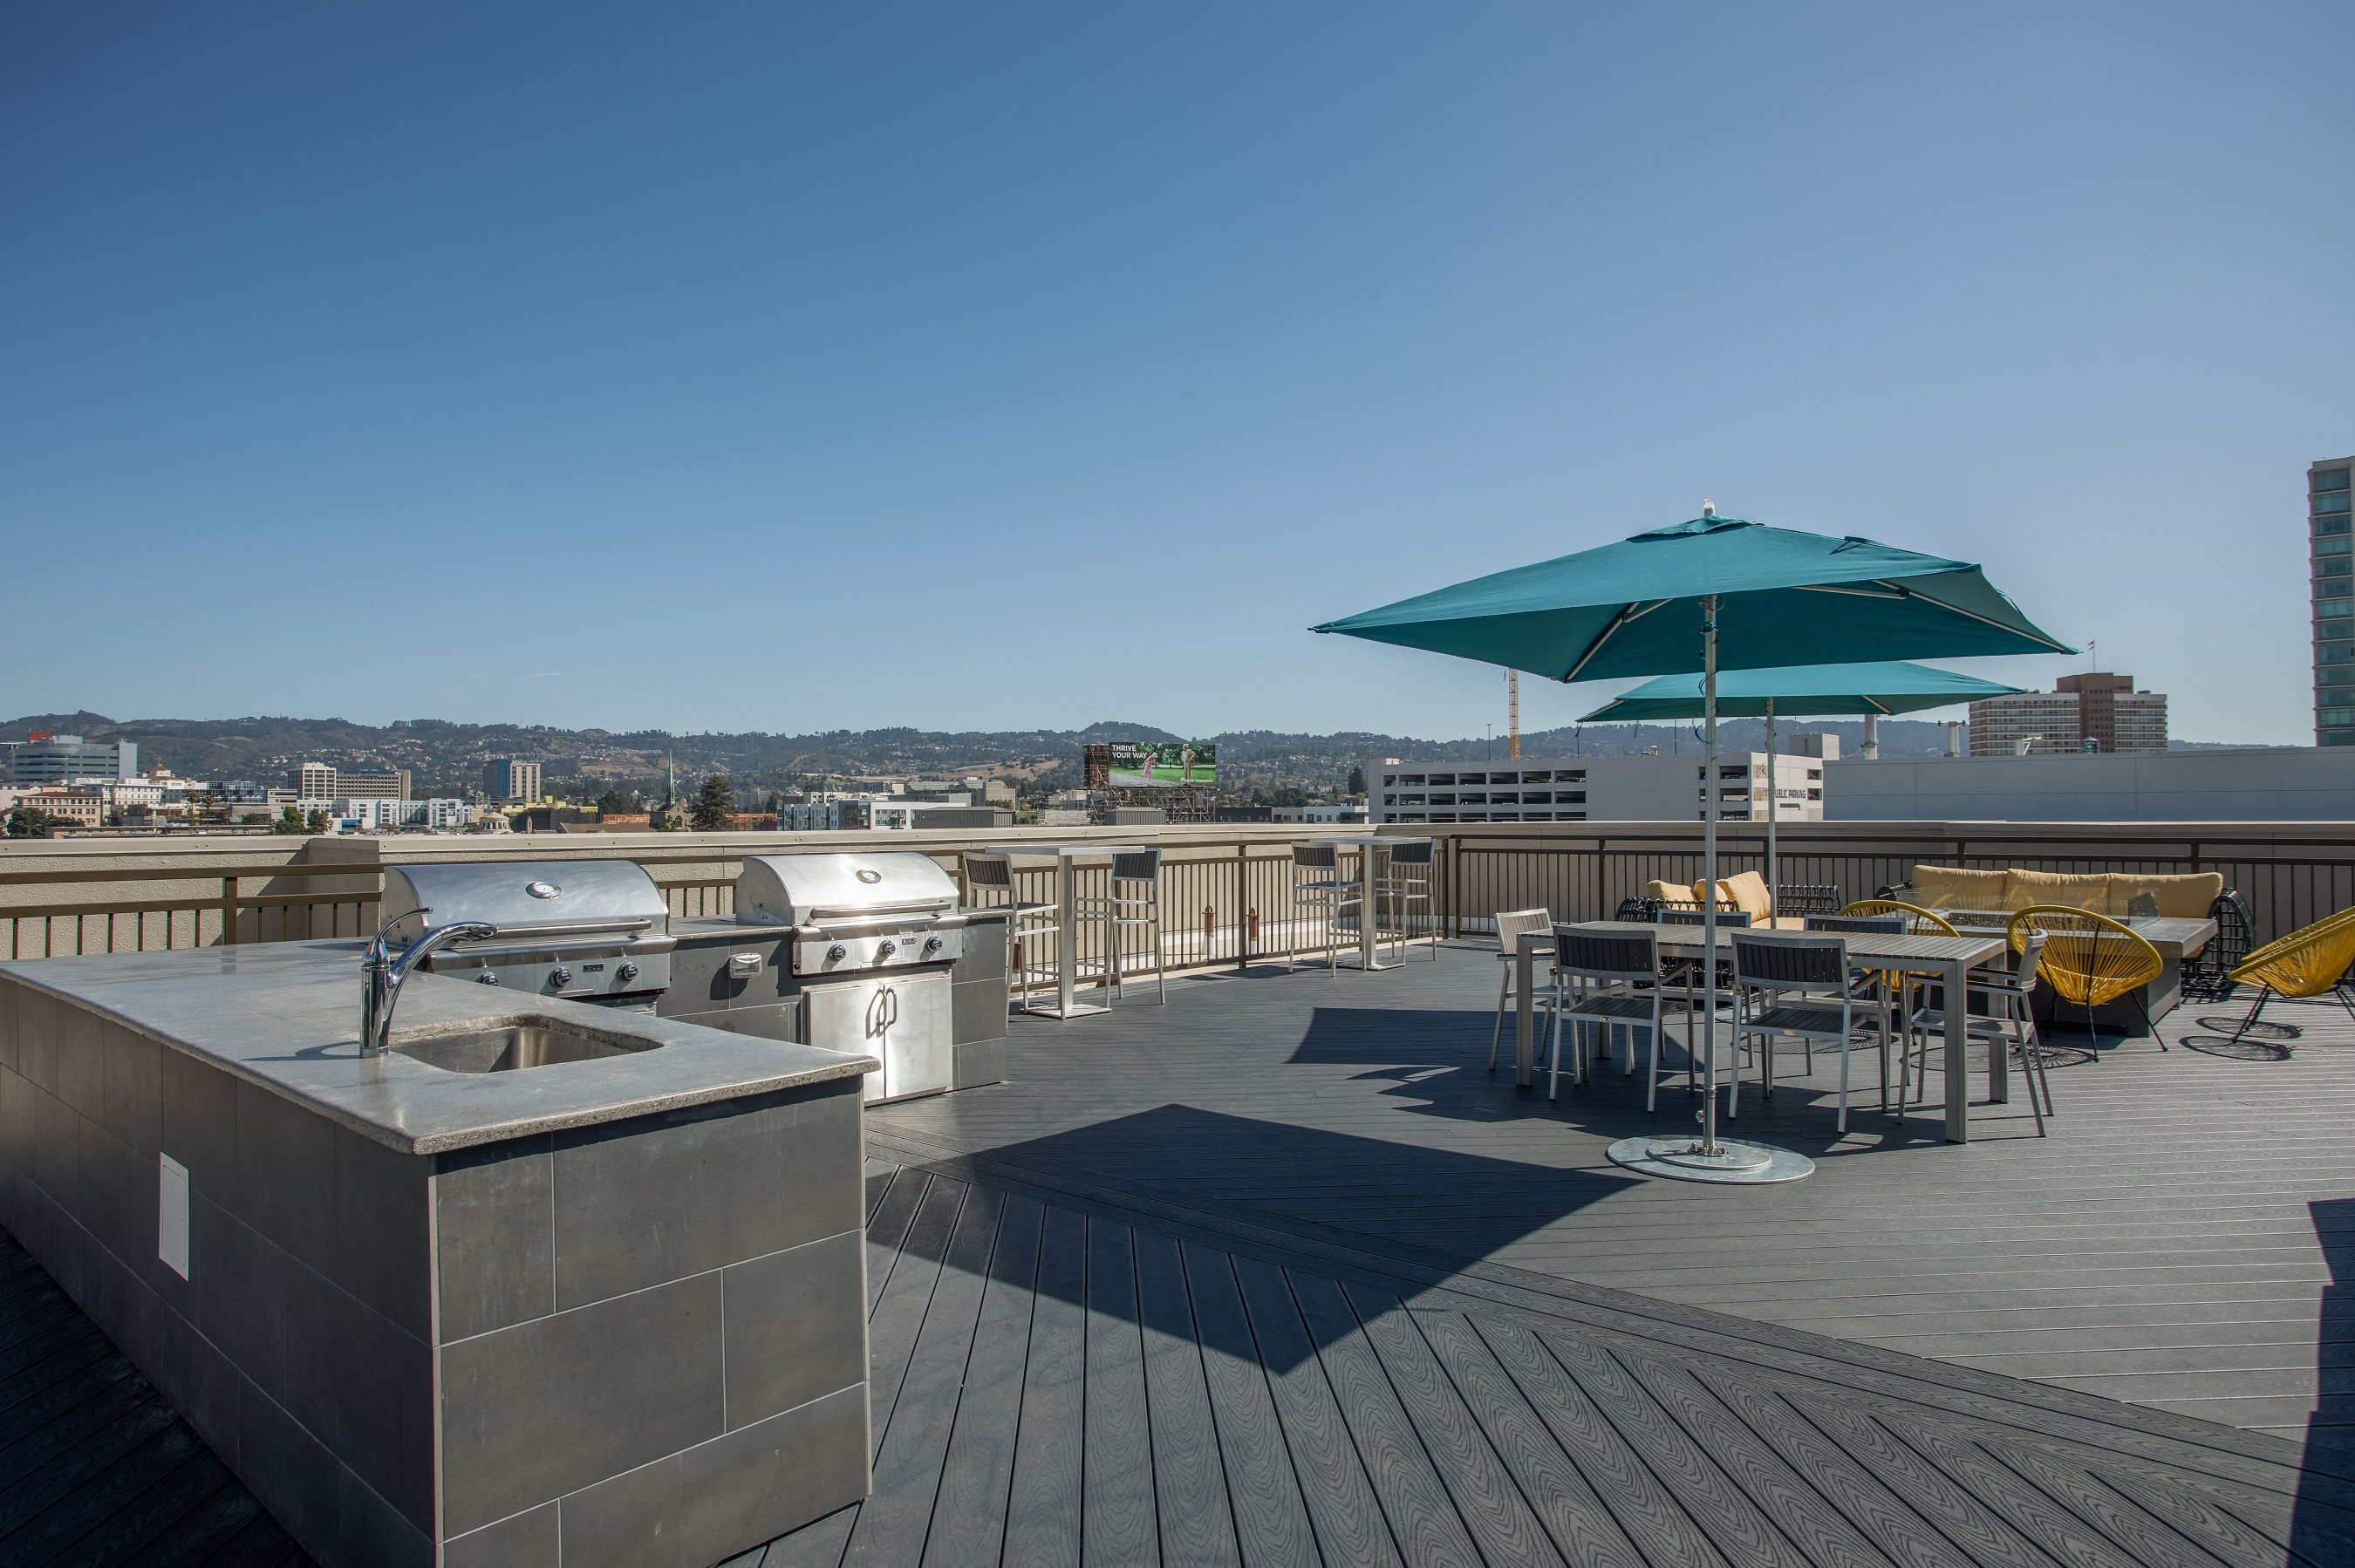 Oakland CA Apartments for Rent - Expansive Rooftop with a Great View of the City Featuring Various Shaded Lounging Areas and Outdoor Grill